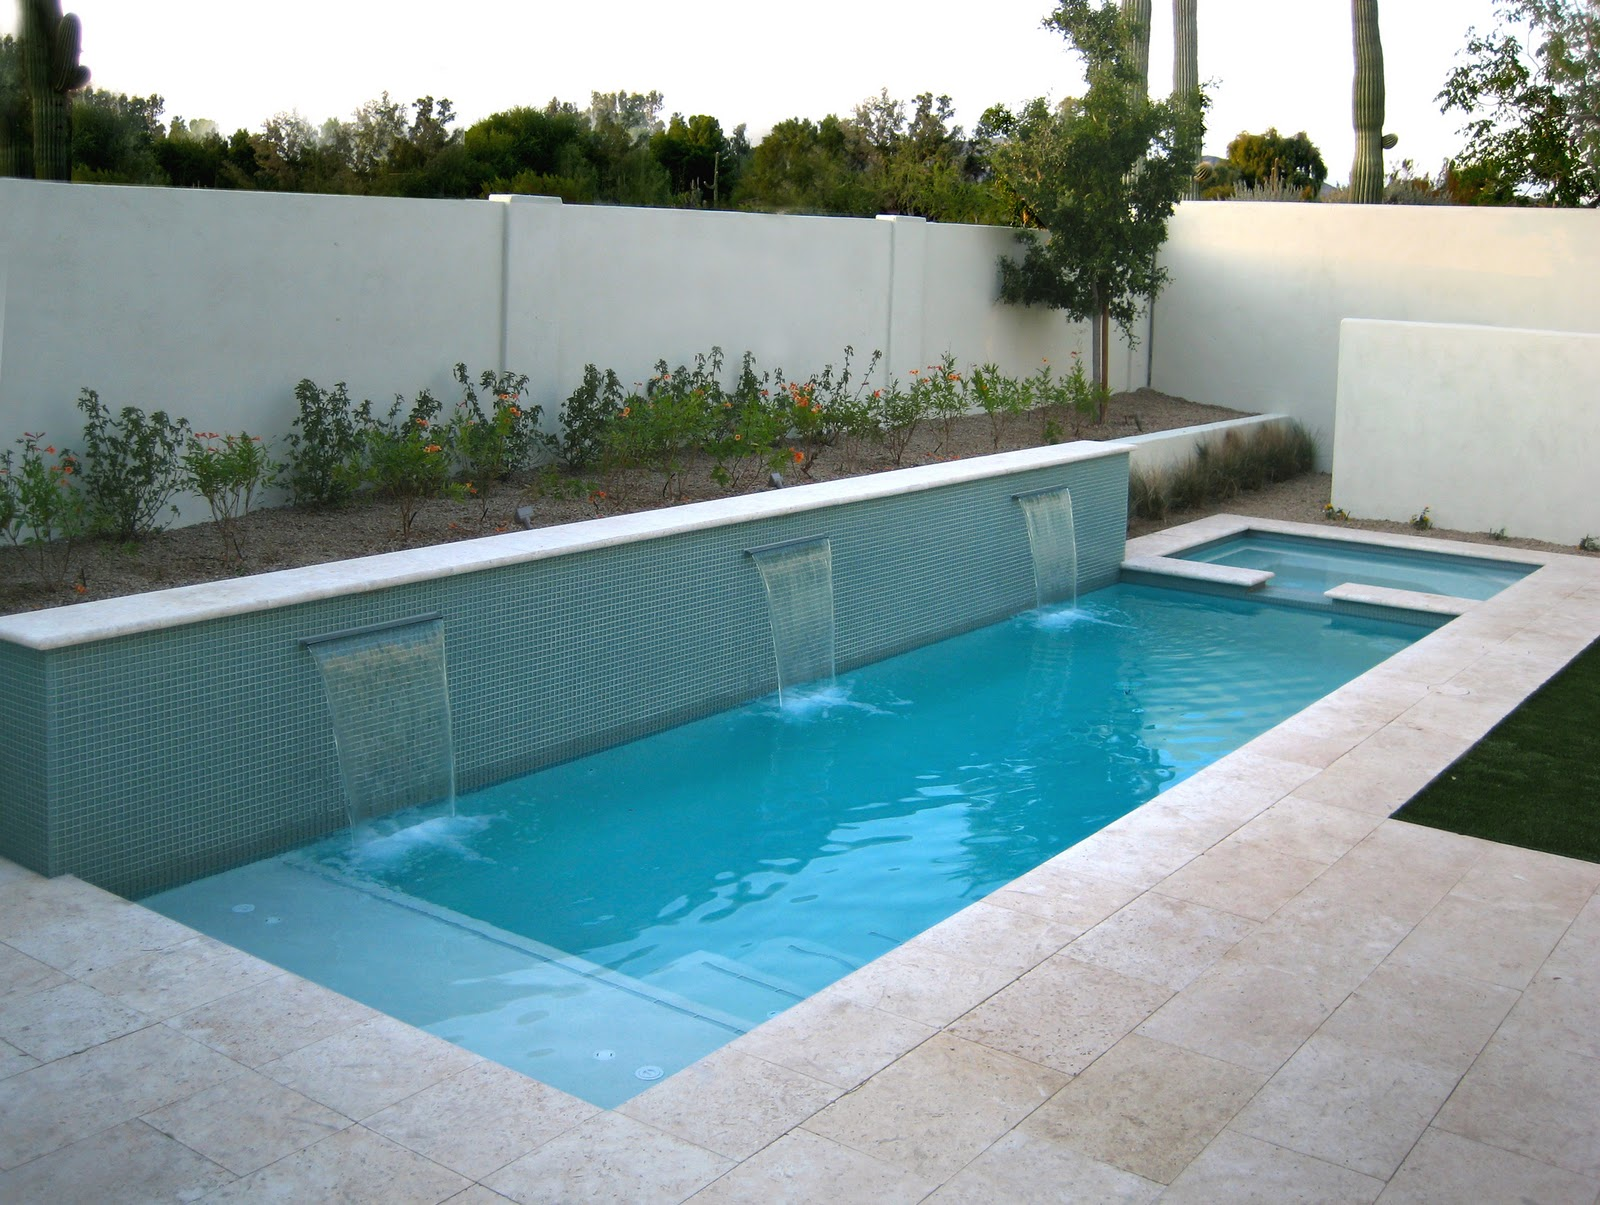 swimming pools in small spaces alpentile glass tile pools and spas. Black Bedroom Furniture Sets. Home Design Ideas